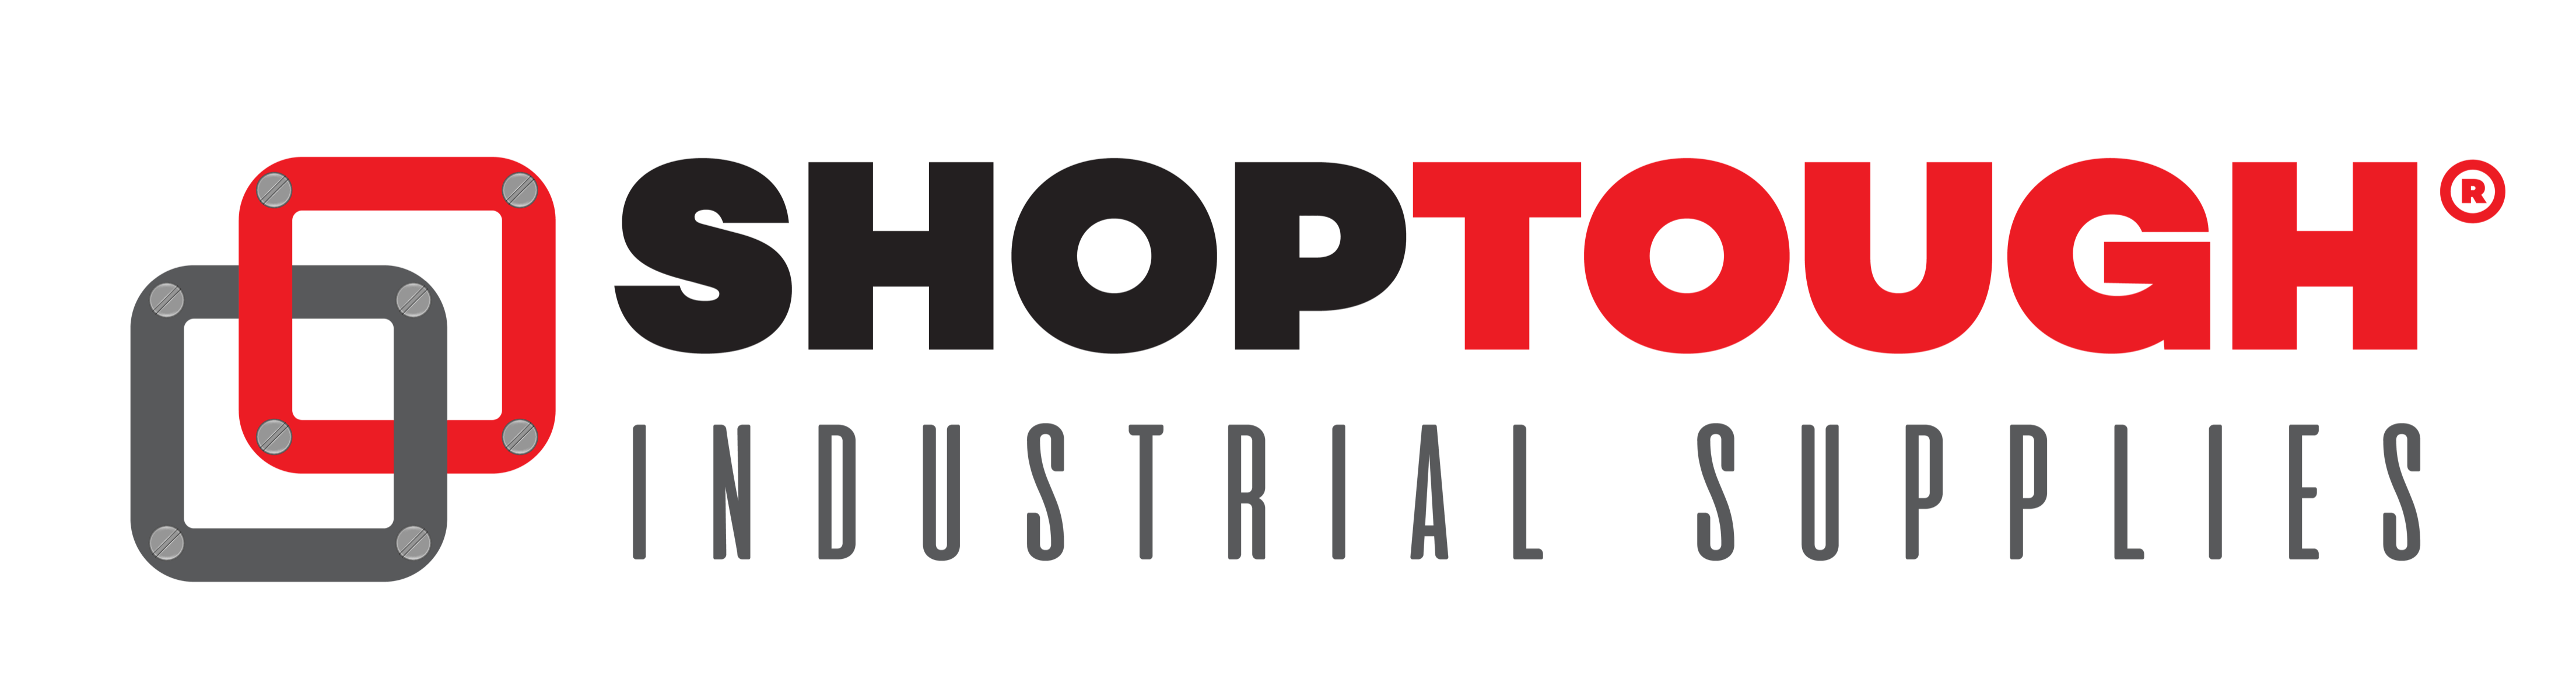 ShopTough-Logo_ShoupTough-Industrial-Supplies-2